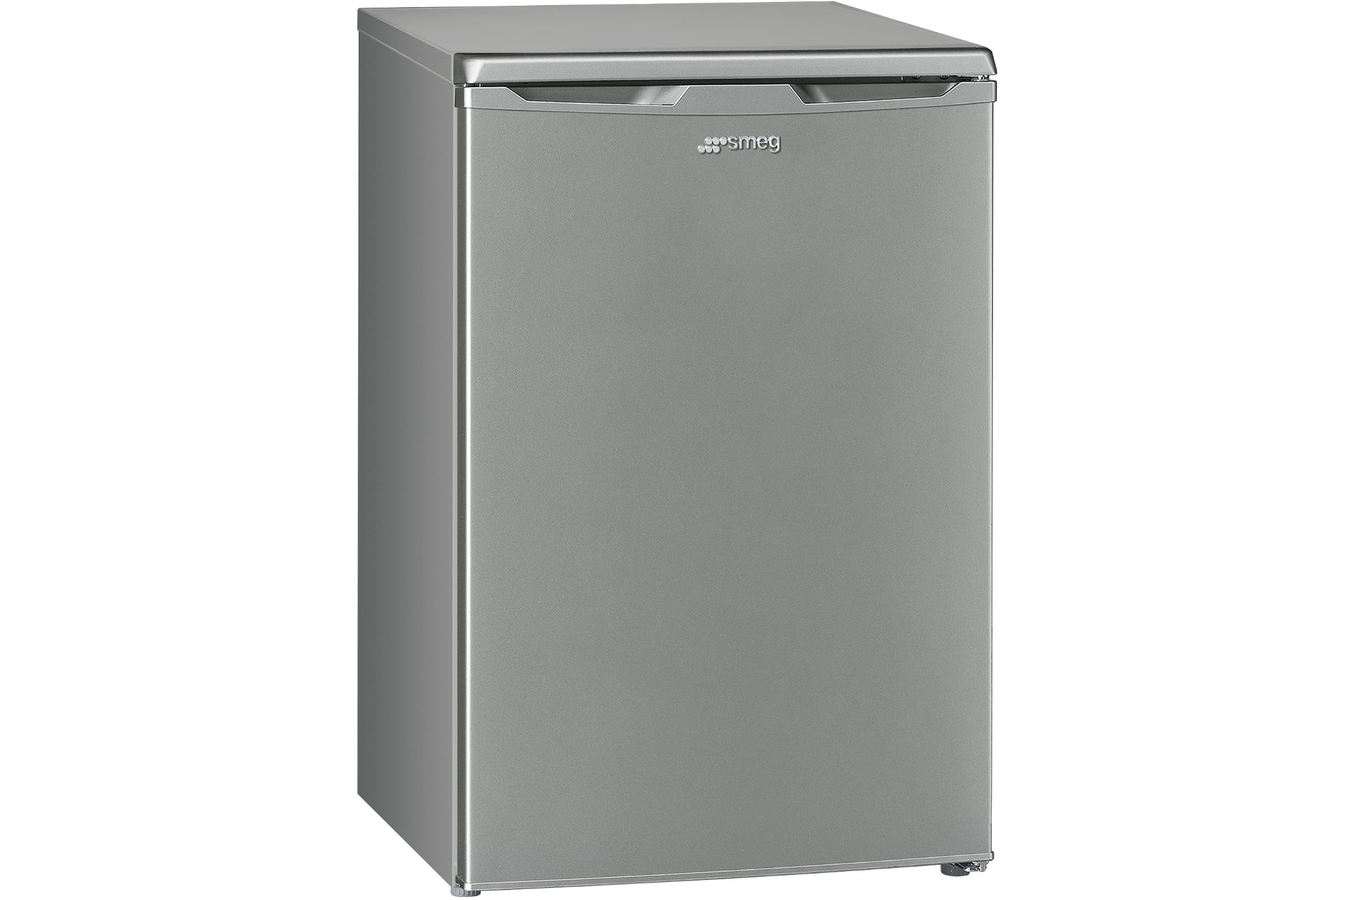 Smeg refrig rateur table top fa130apx1 pas cher - Congelateur table top pas cher ...